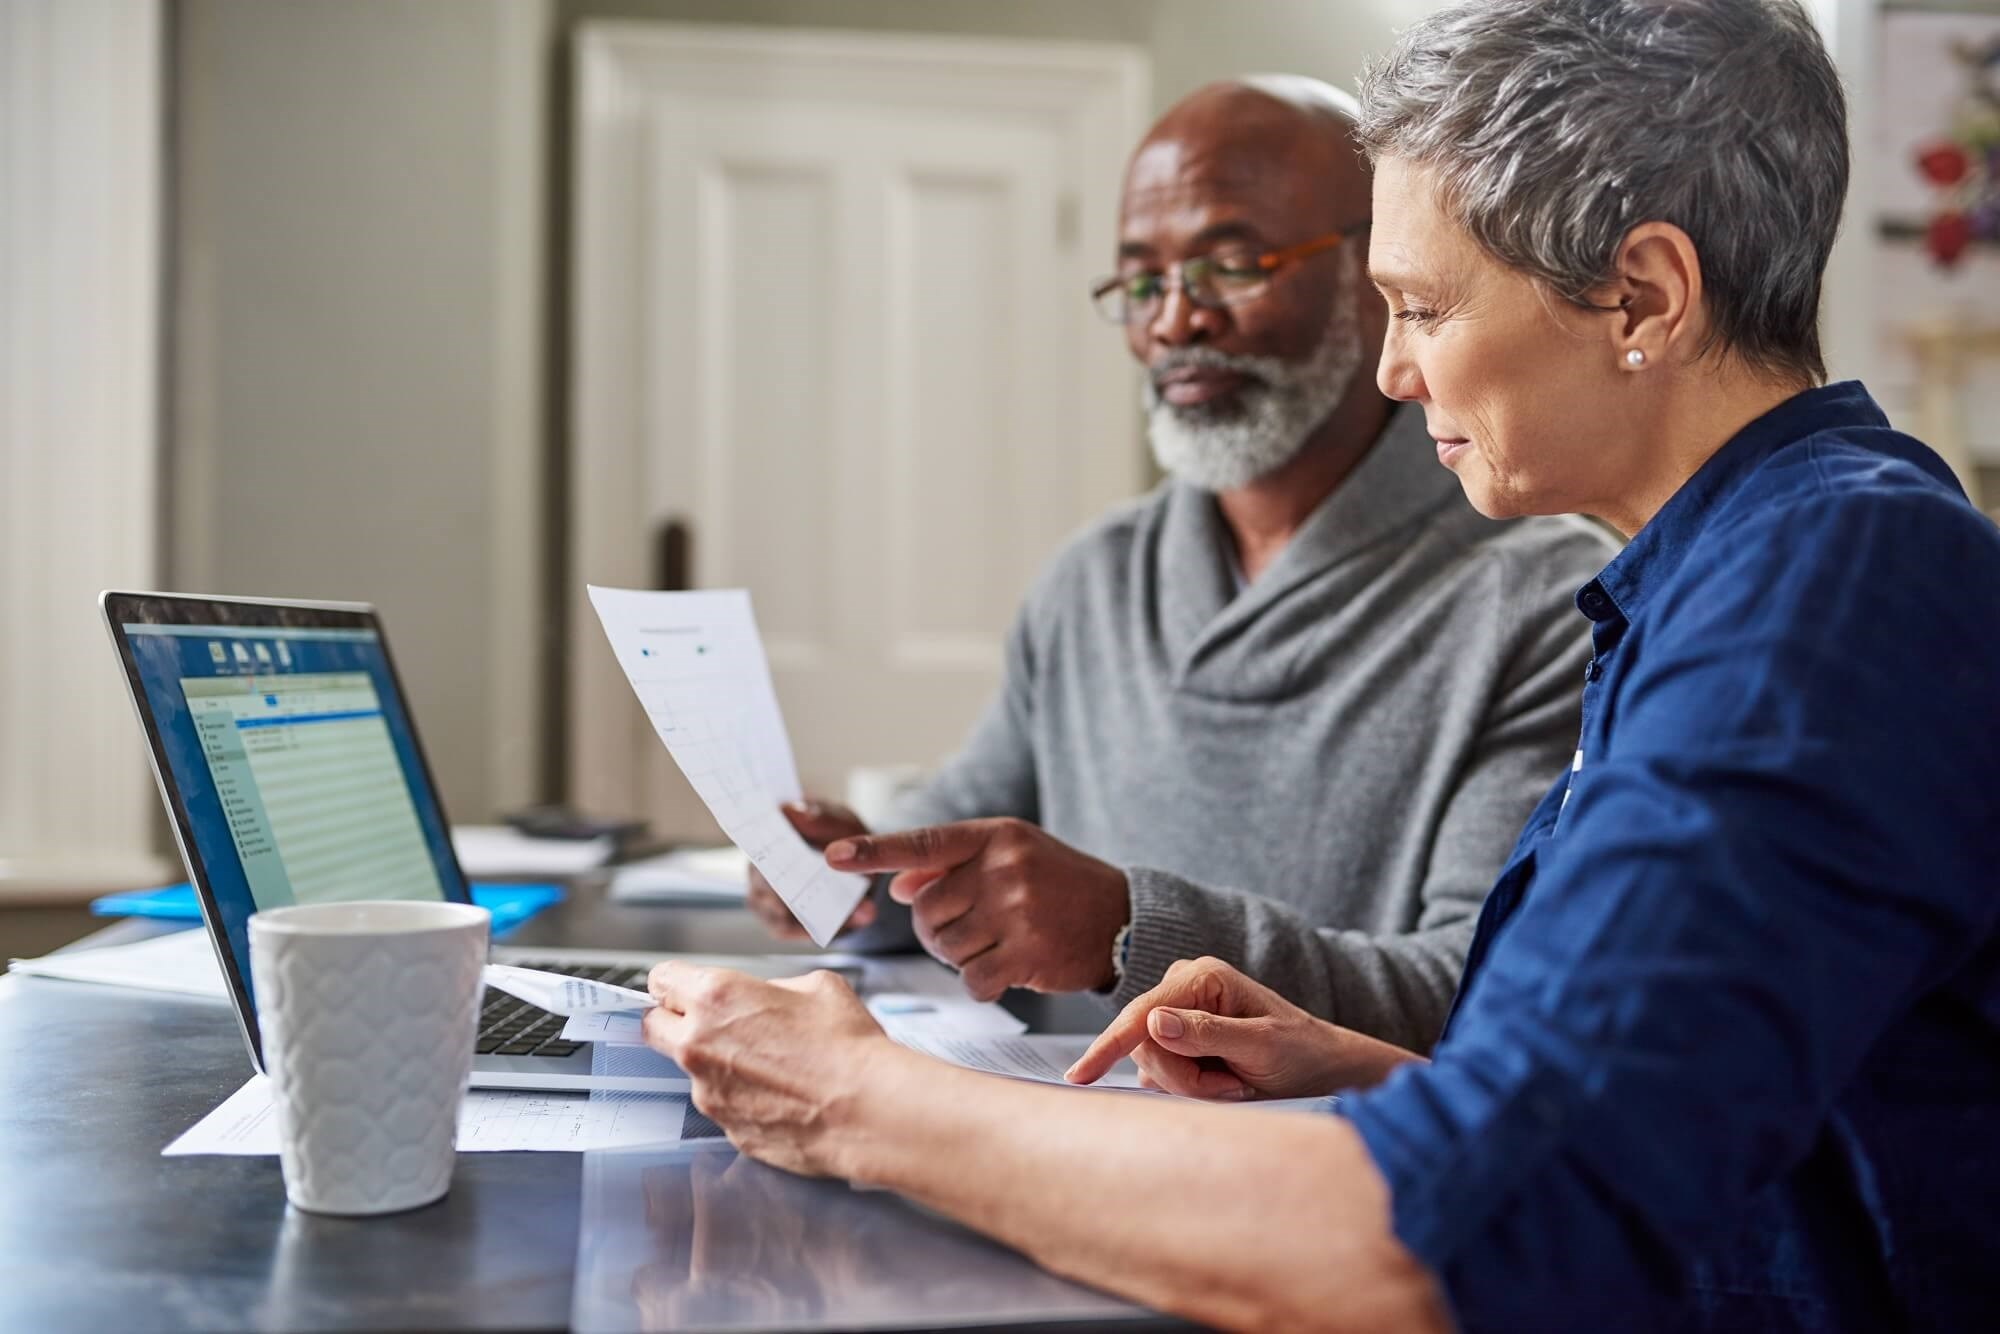 The patient-facing PREPARE advance care planning program plus an easy-to-read advance directive significantly increases documentation of advance care planning and patient-reported engagement.